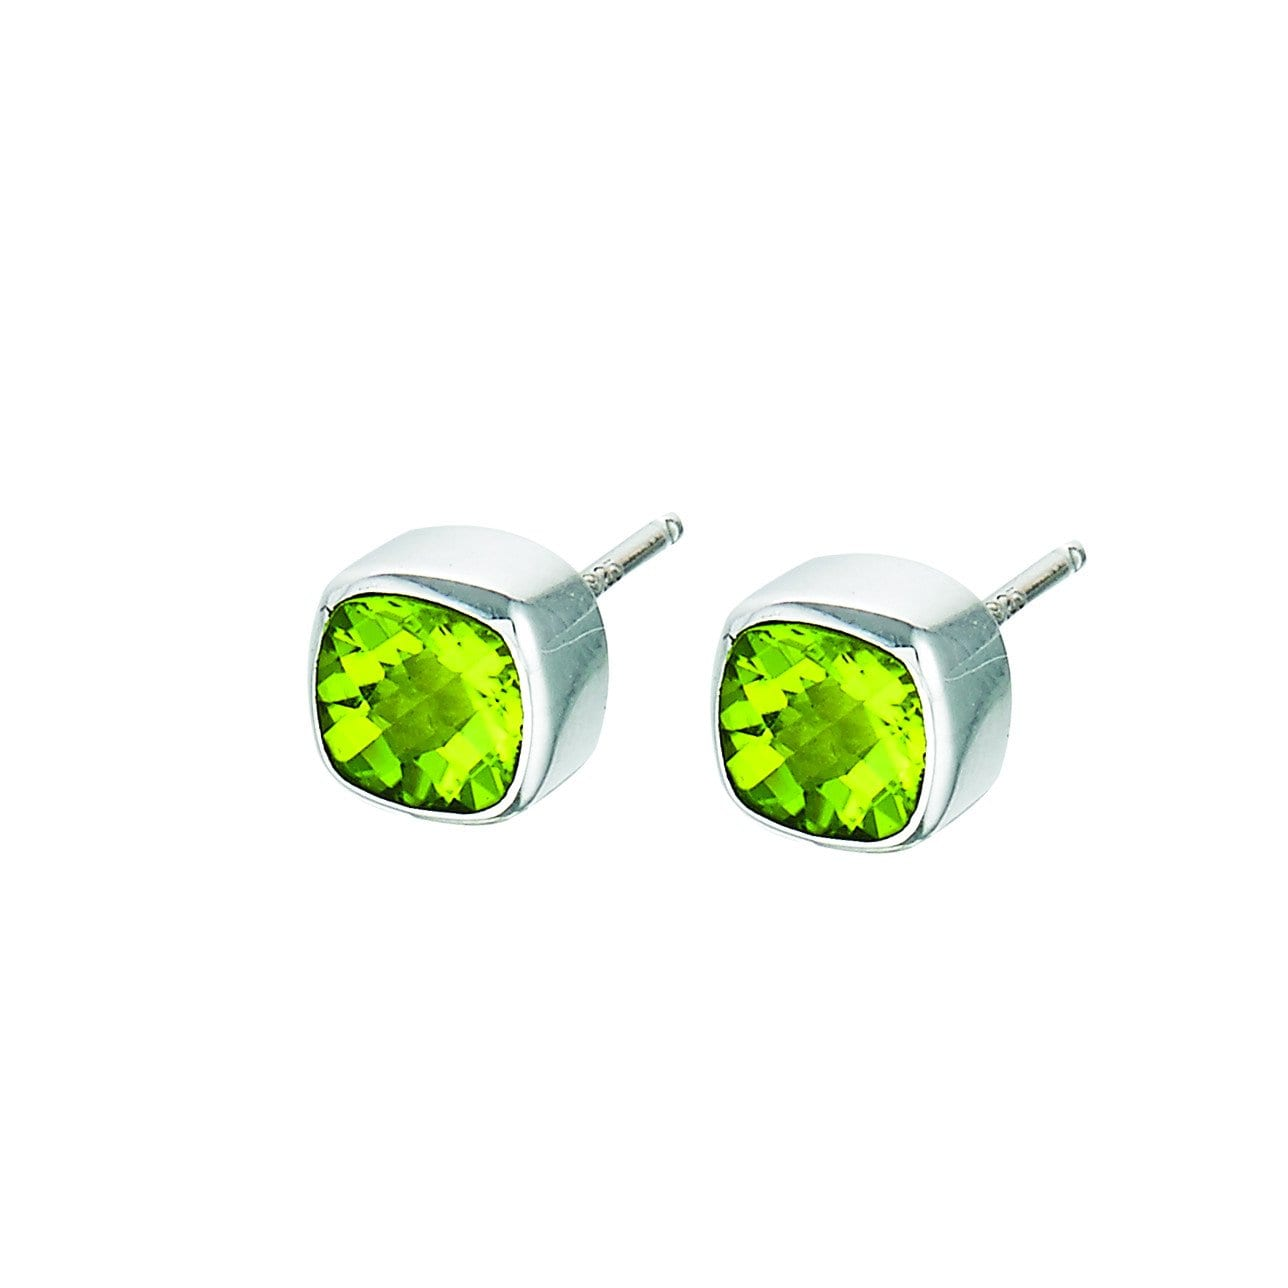 earrings v hsn a of je studded shop peridot pair gems complexgrid silver yellow semi with green